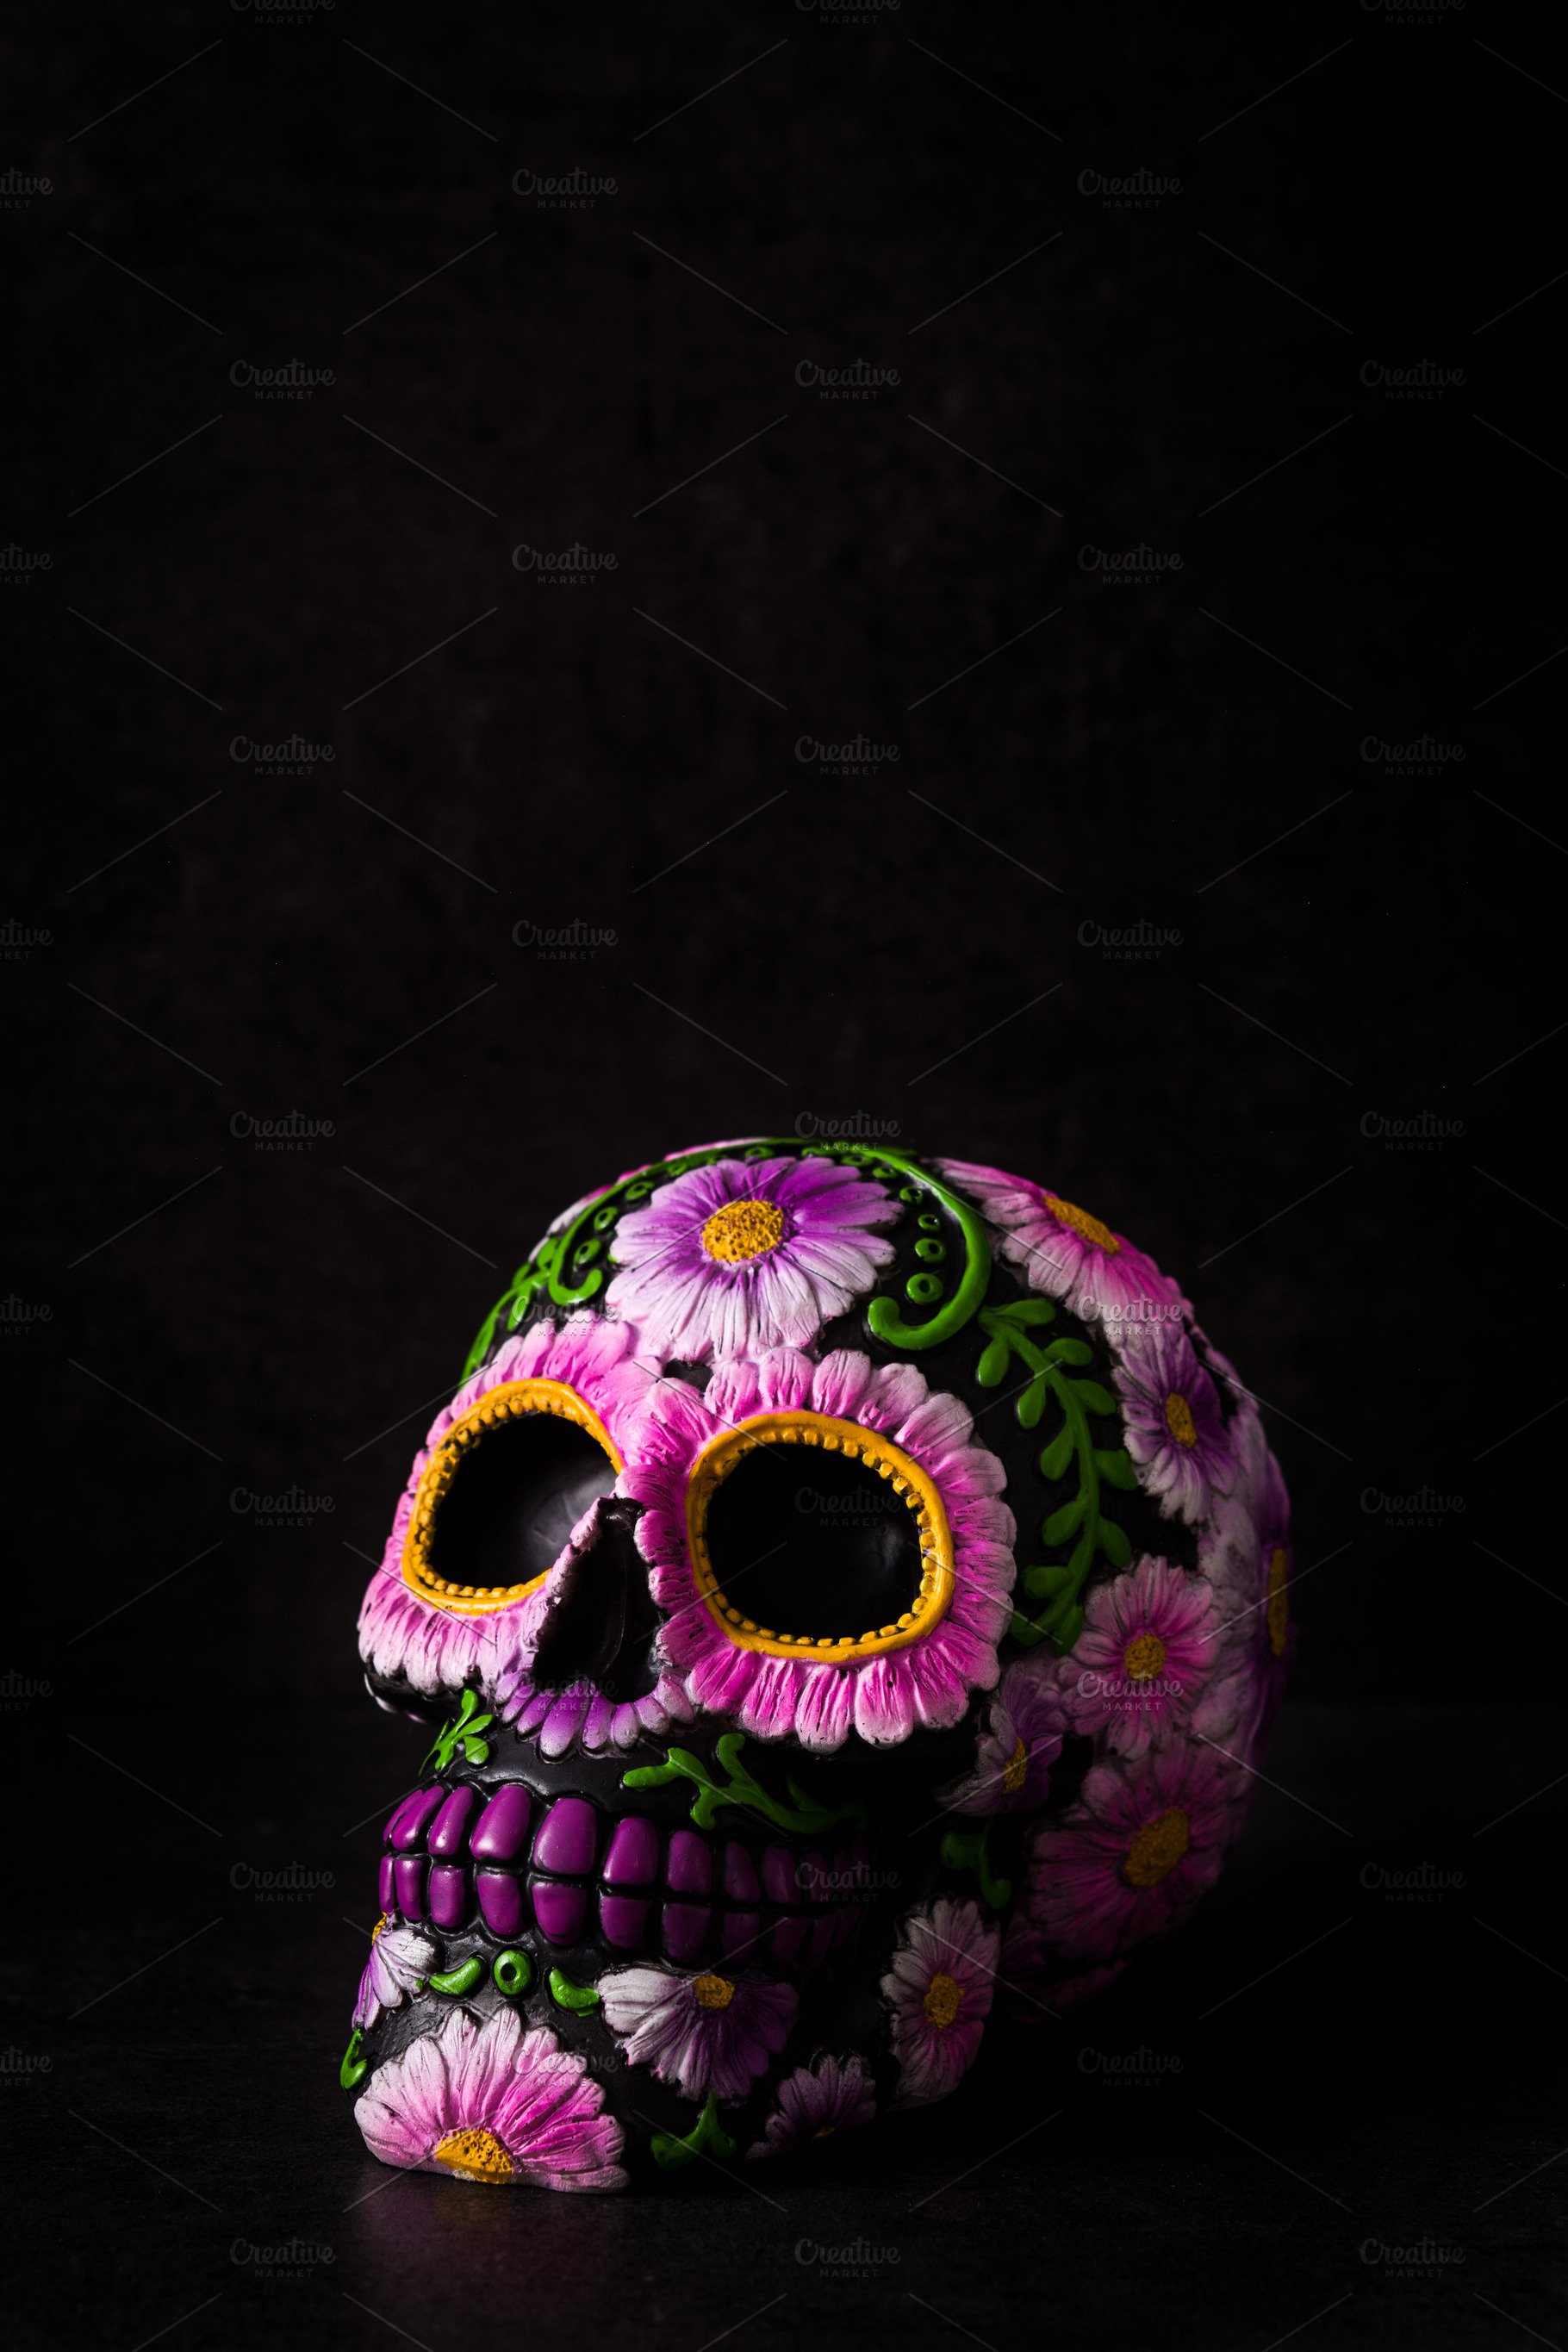 Typical Mexican skull